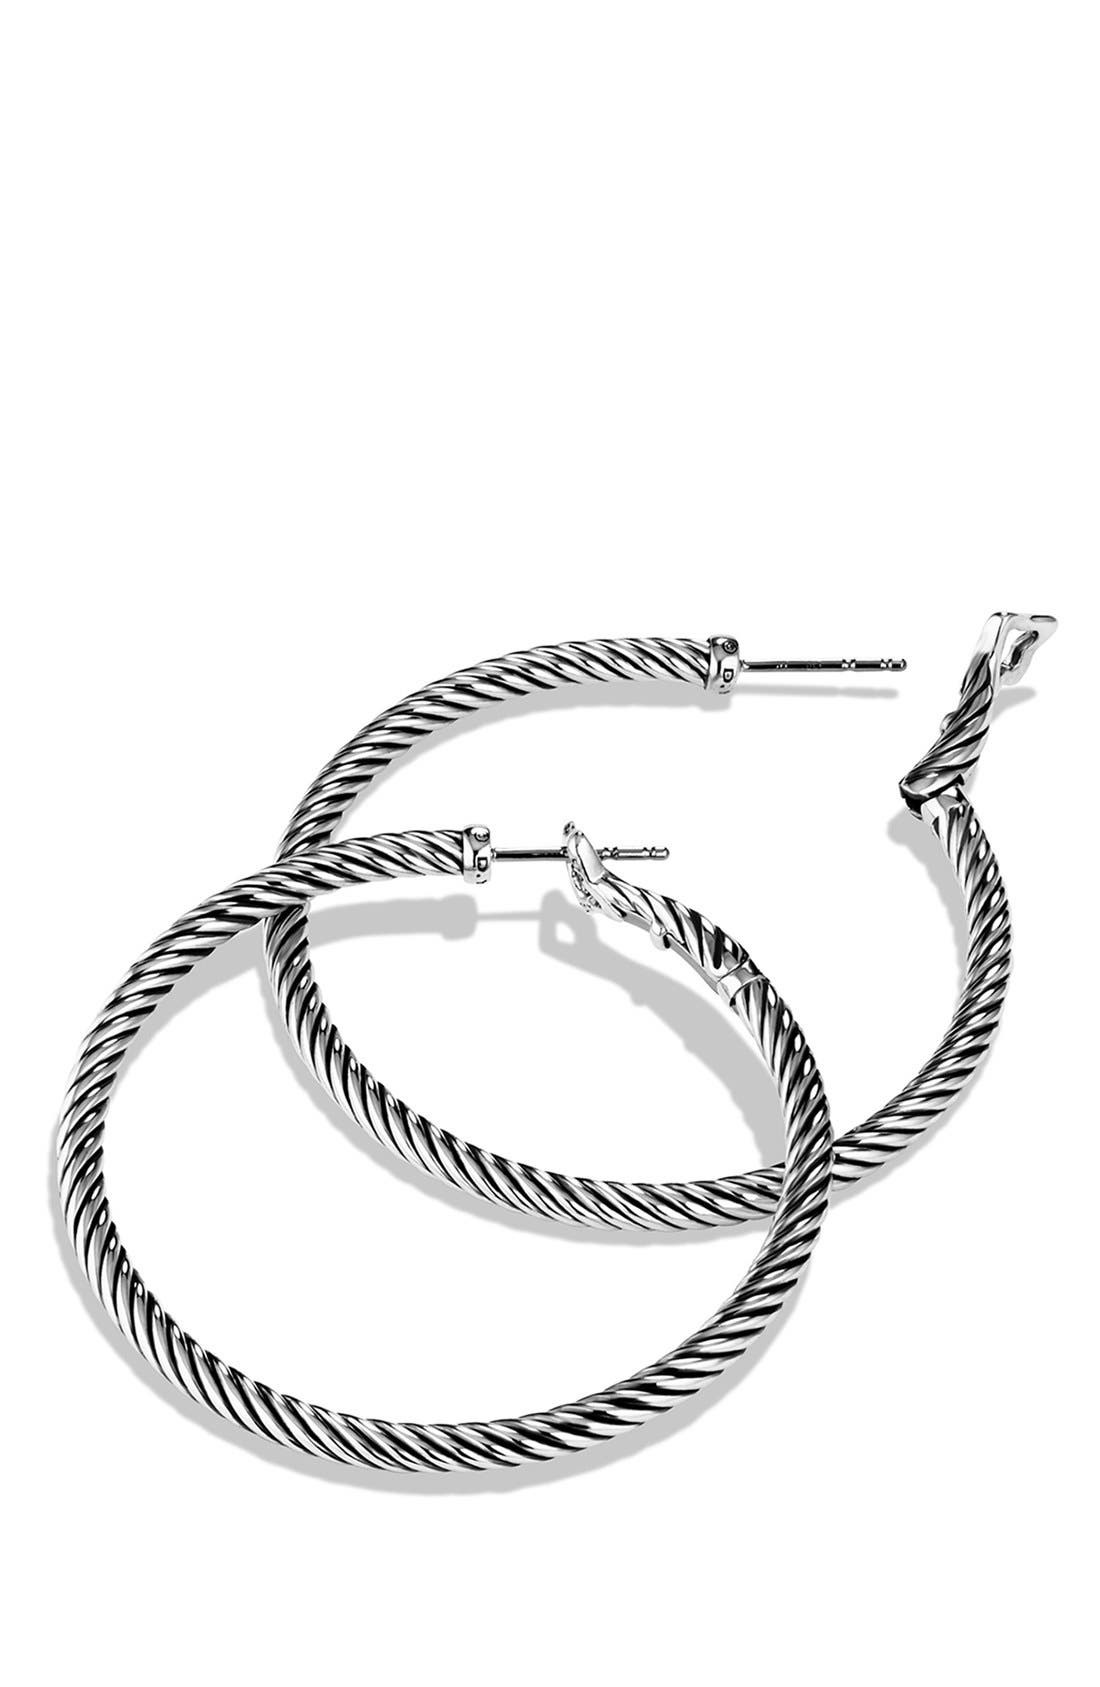 'Cable Classics' Large Hoop Earrings,                             Alternate thumbnail 2, color,                             SILVER